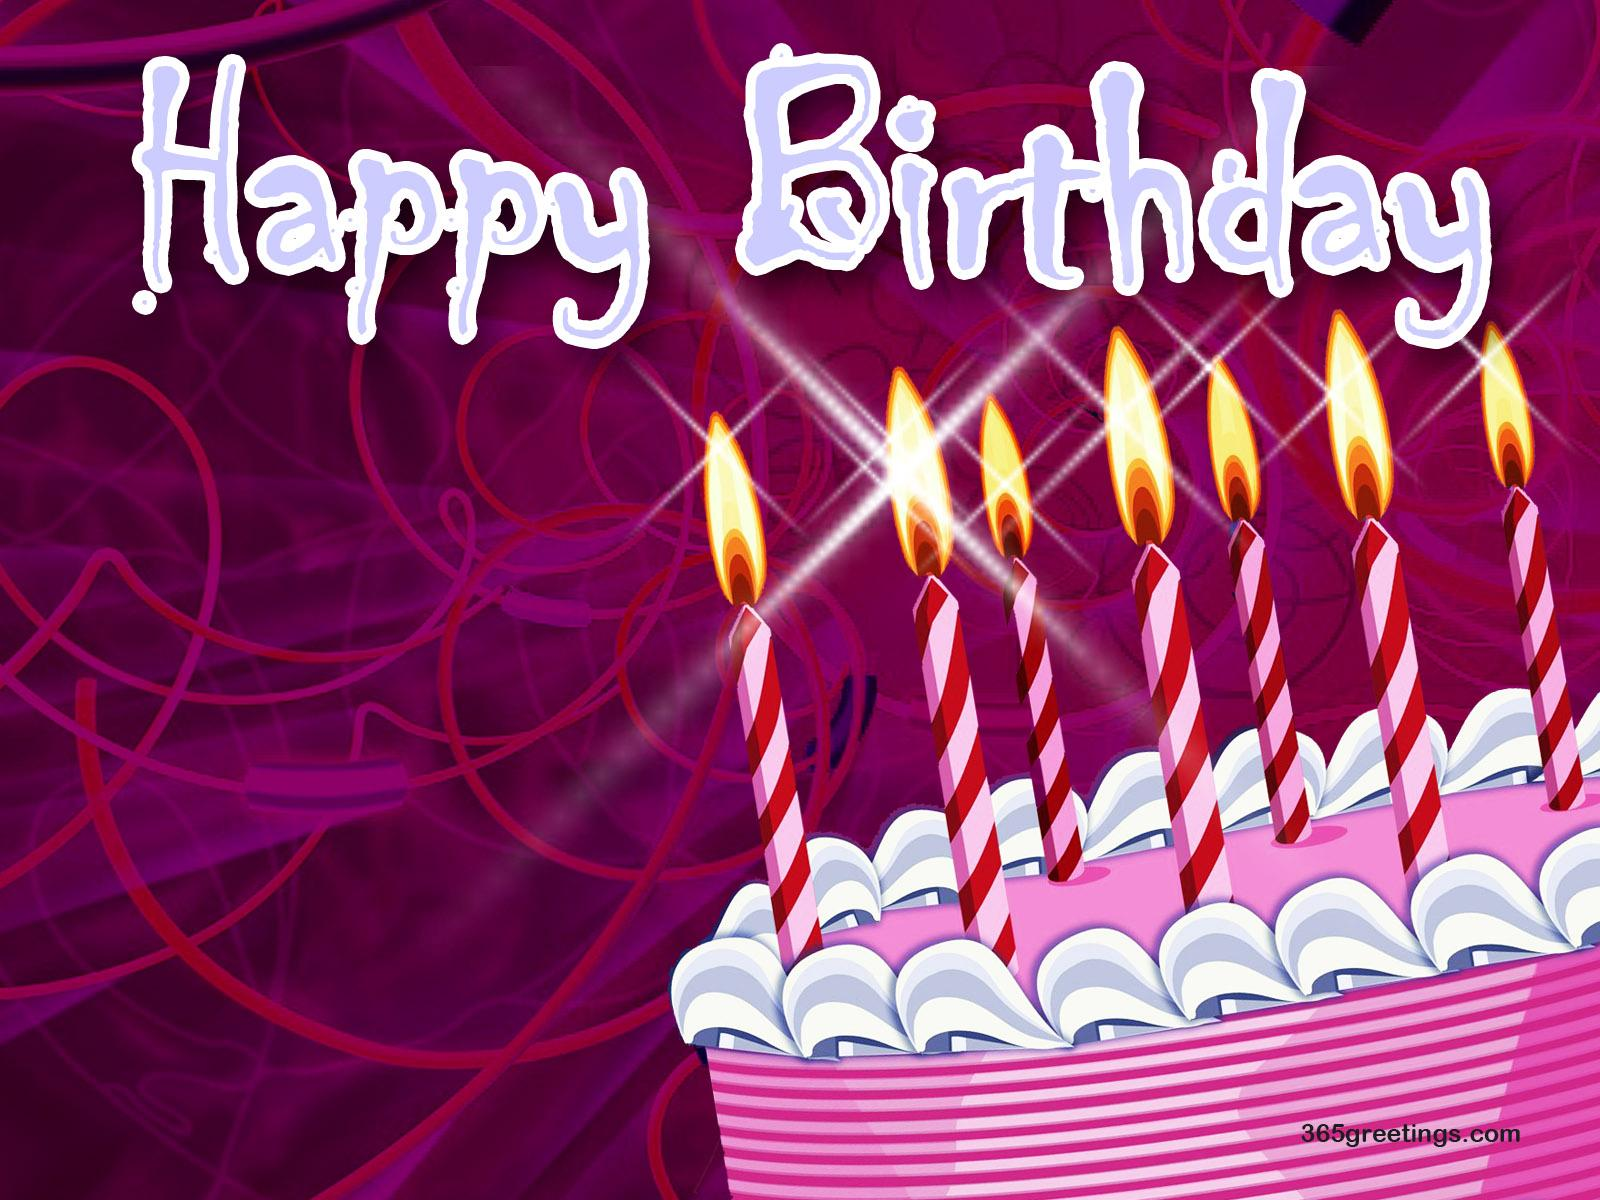 krithi20000 images happy birthday sweet heart hd wallpaper and